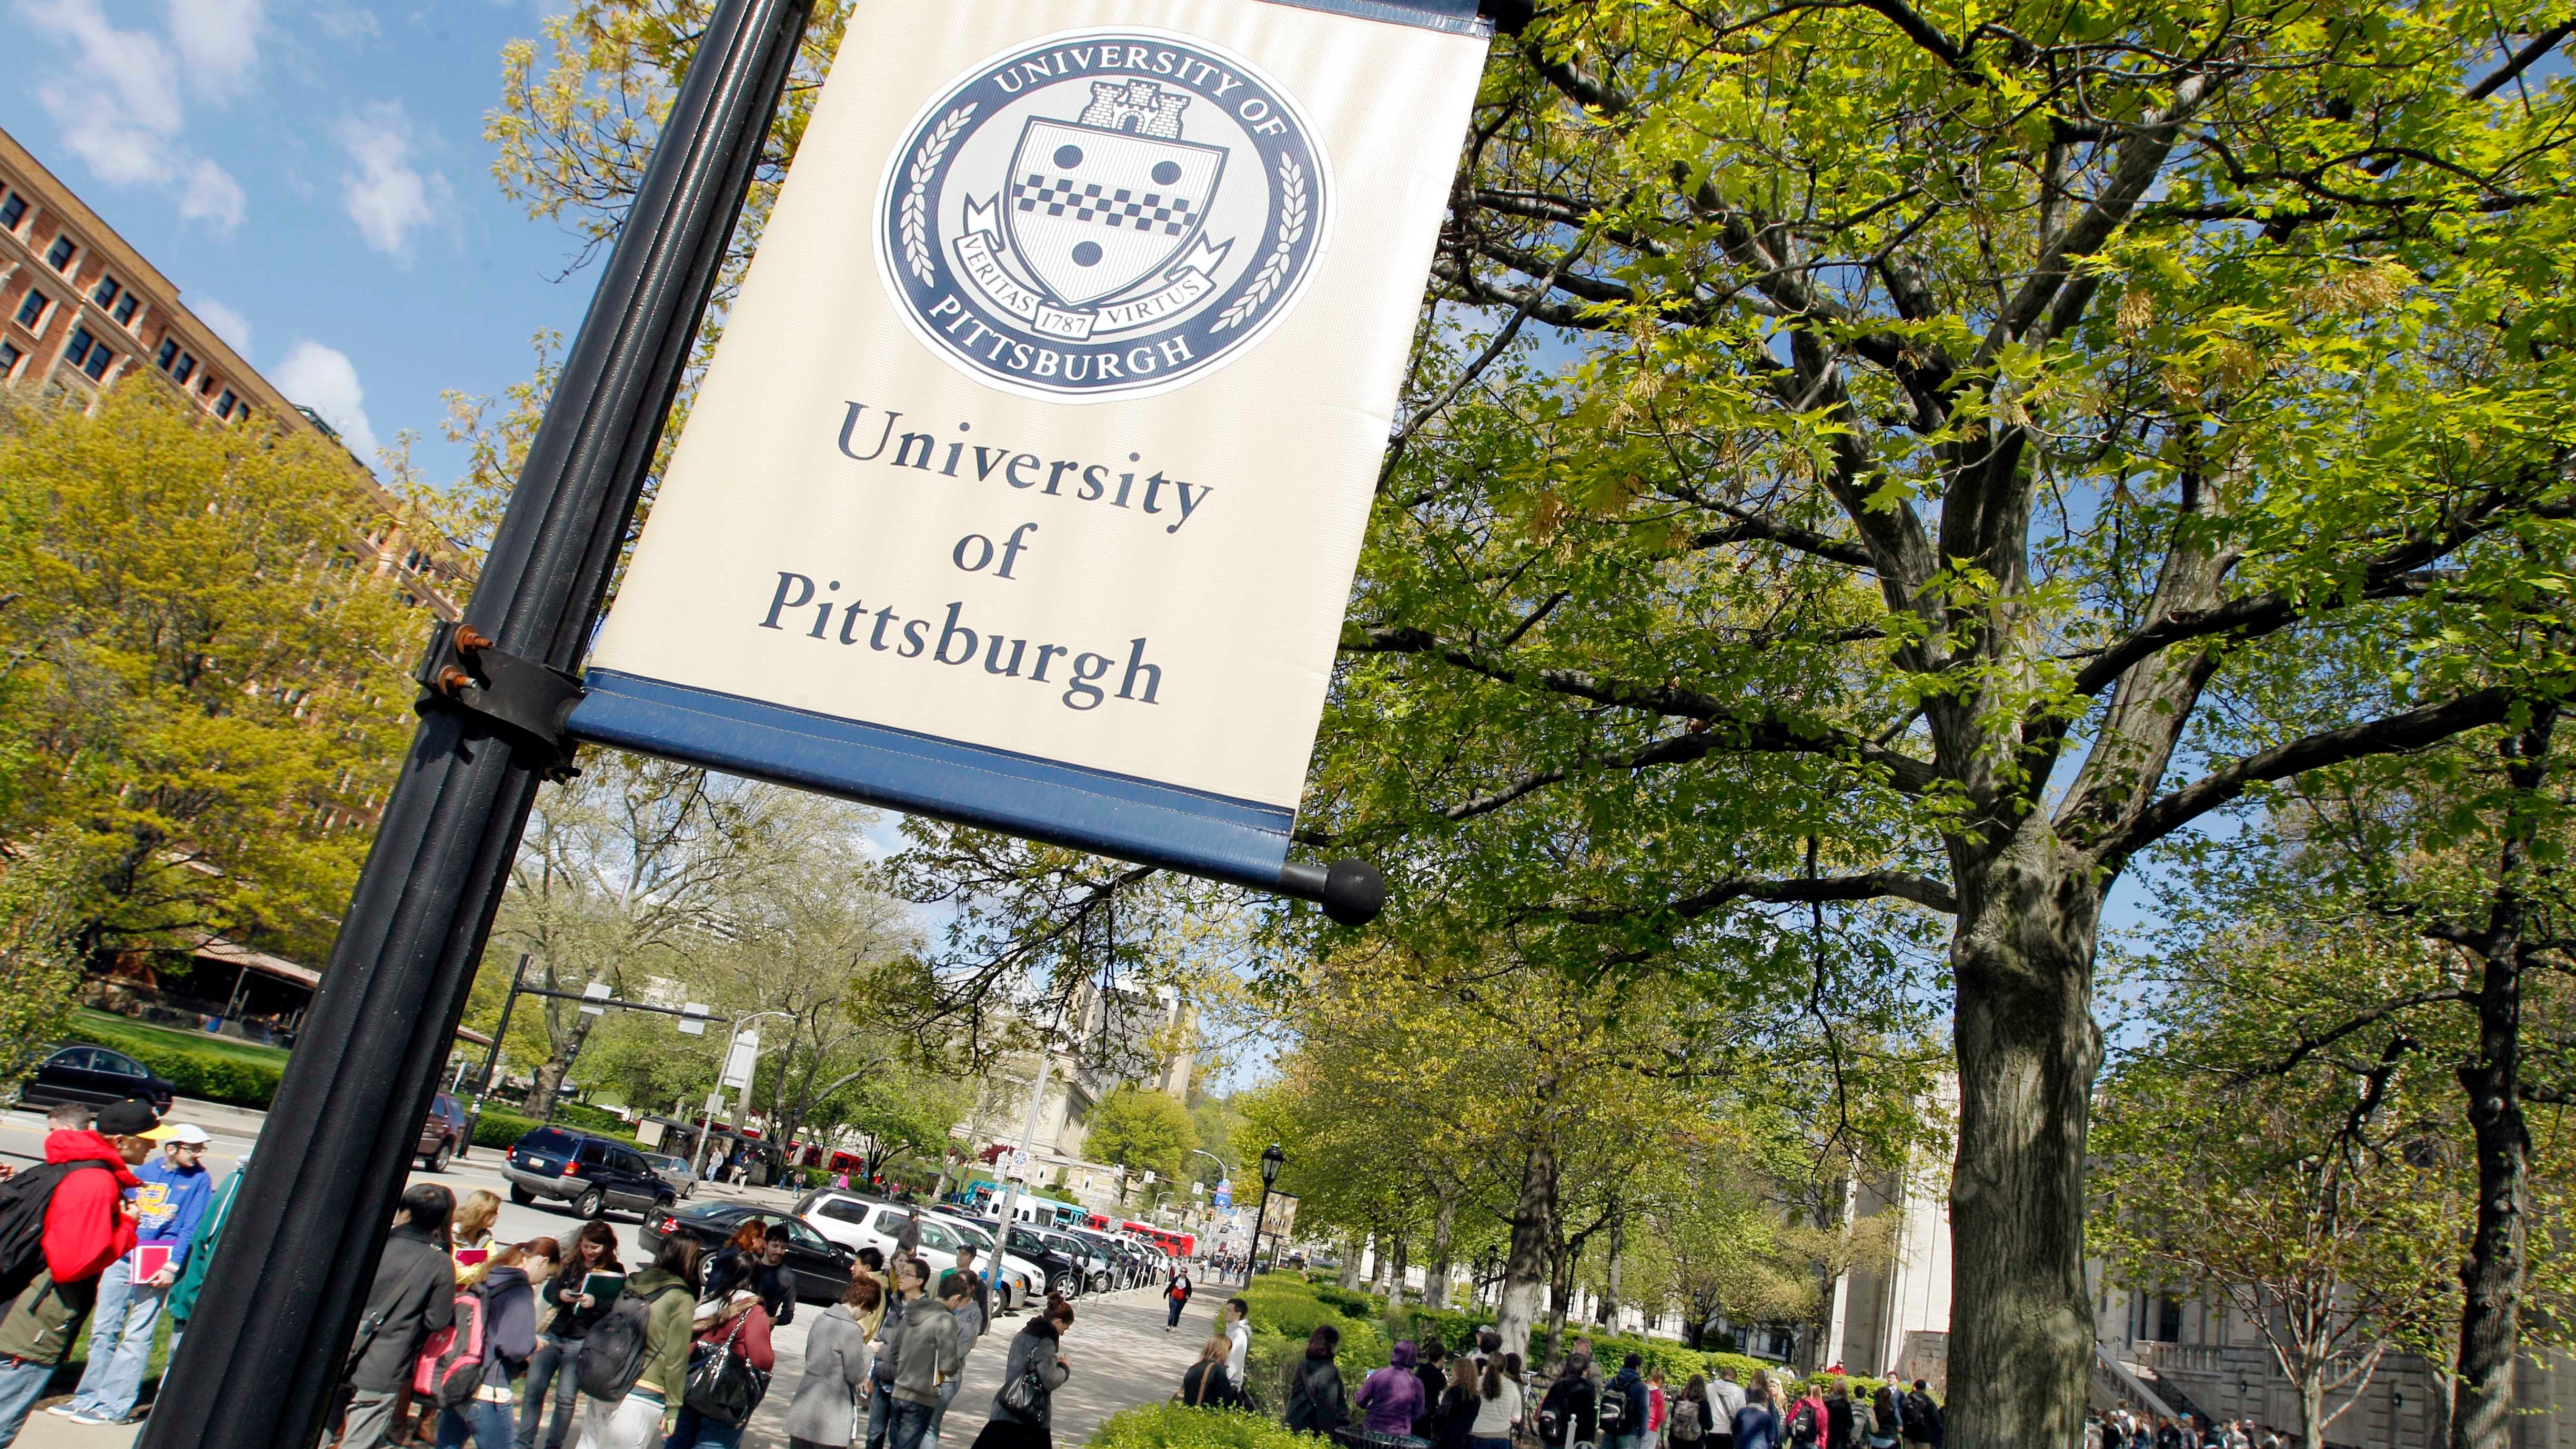 Lawsuit Alleges University Of Pittsburgh Covered Up Escaped Lab Monkey Infected With 'Select Agent'